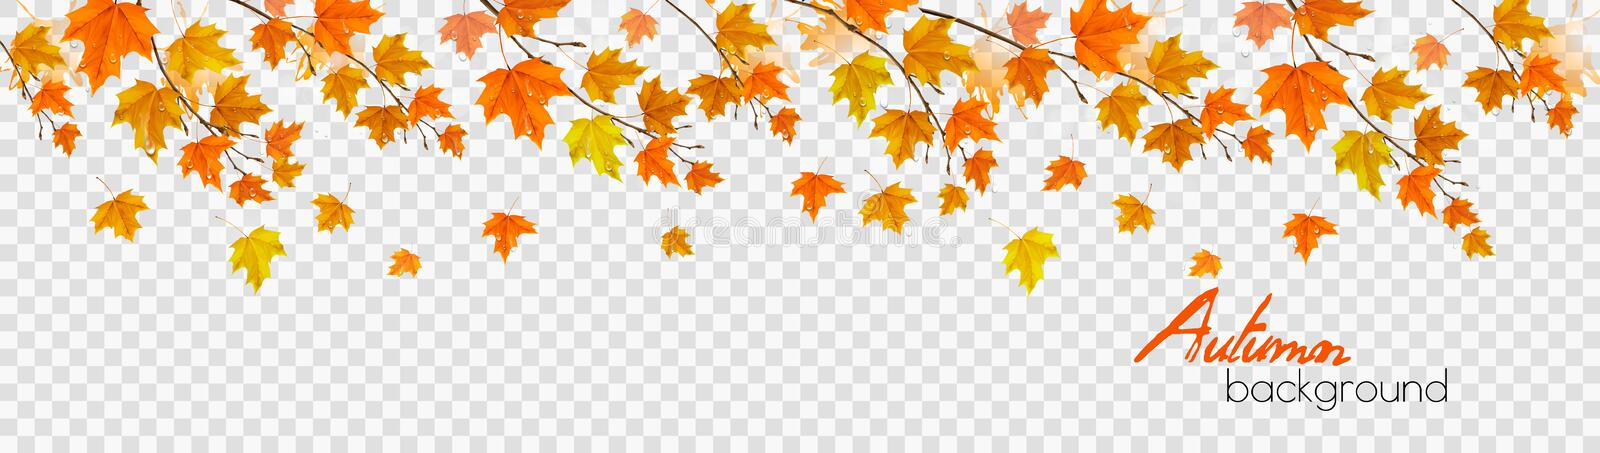 Nature autumn panorama with colorful leaves vector illustration